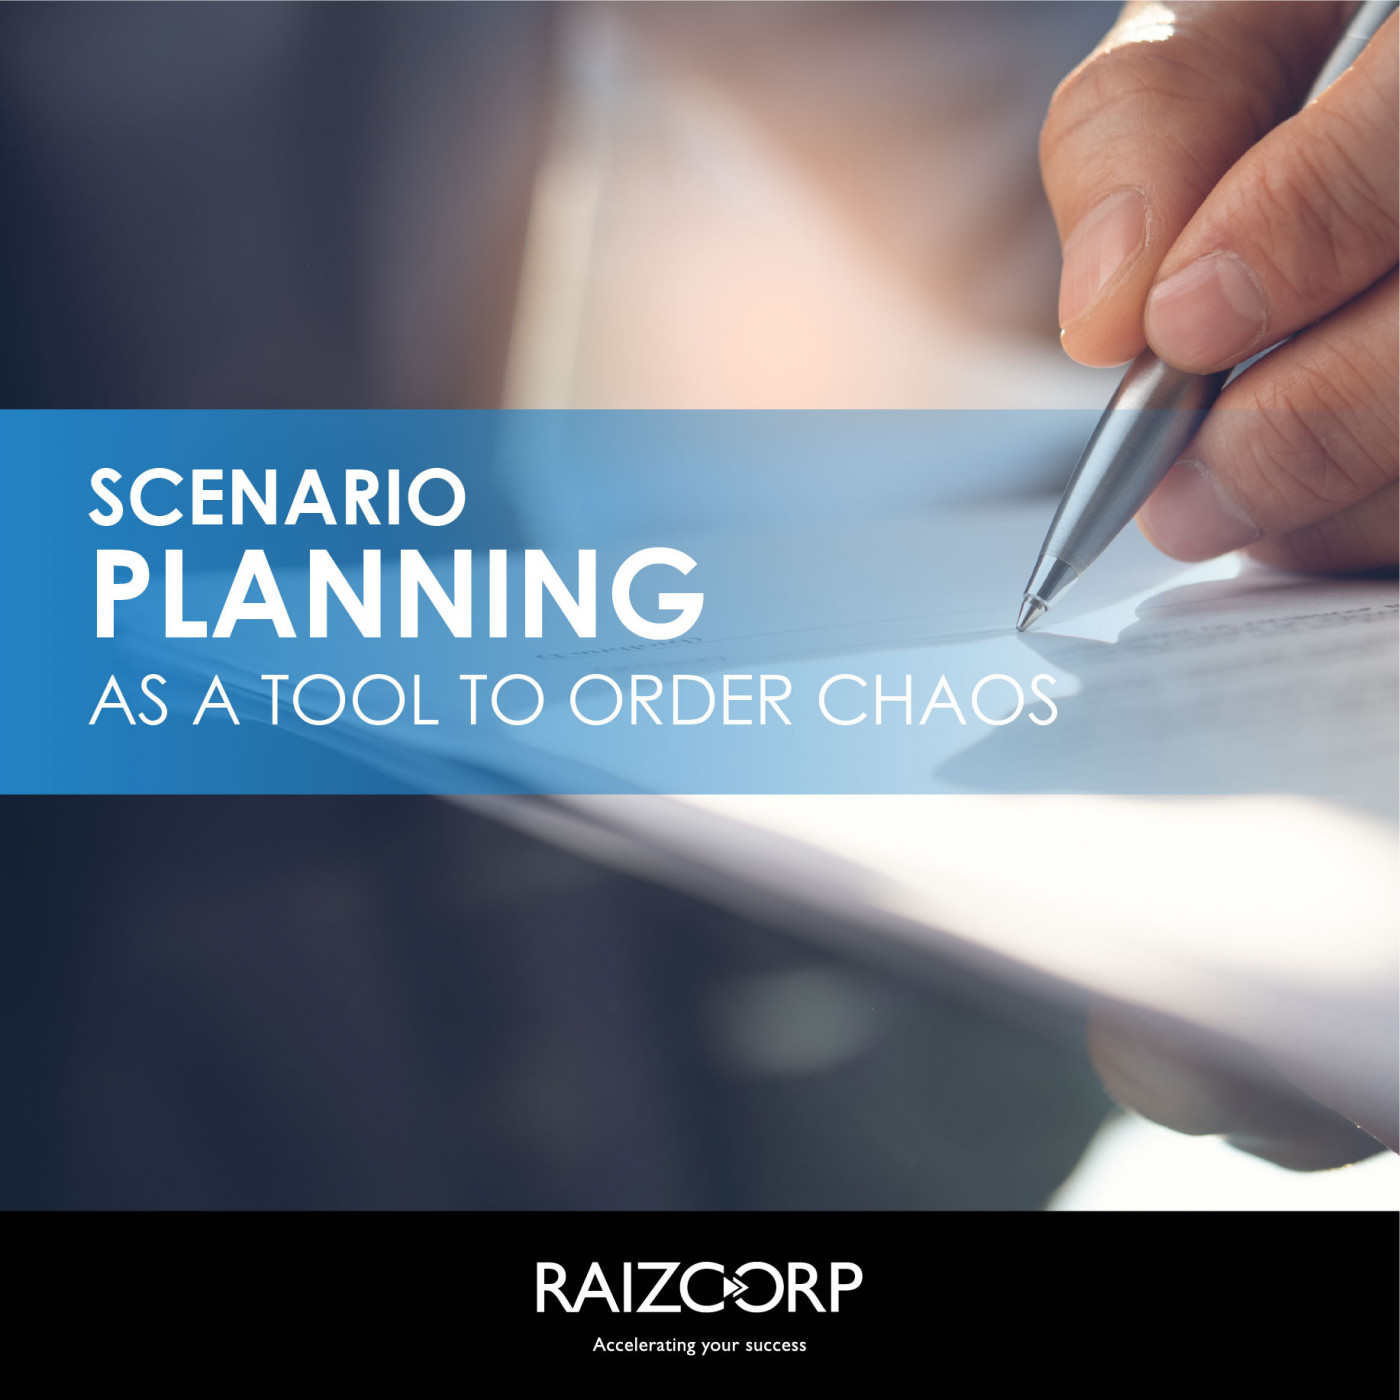 3: Scenario planning is a tool to order chaos